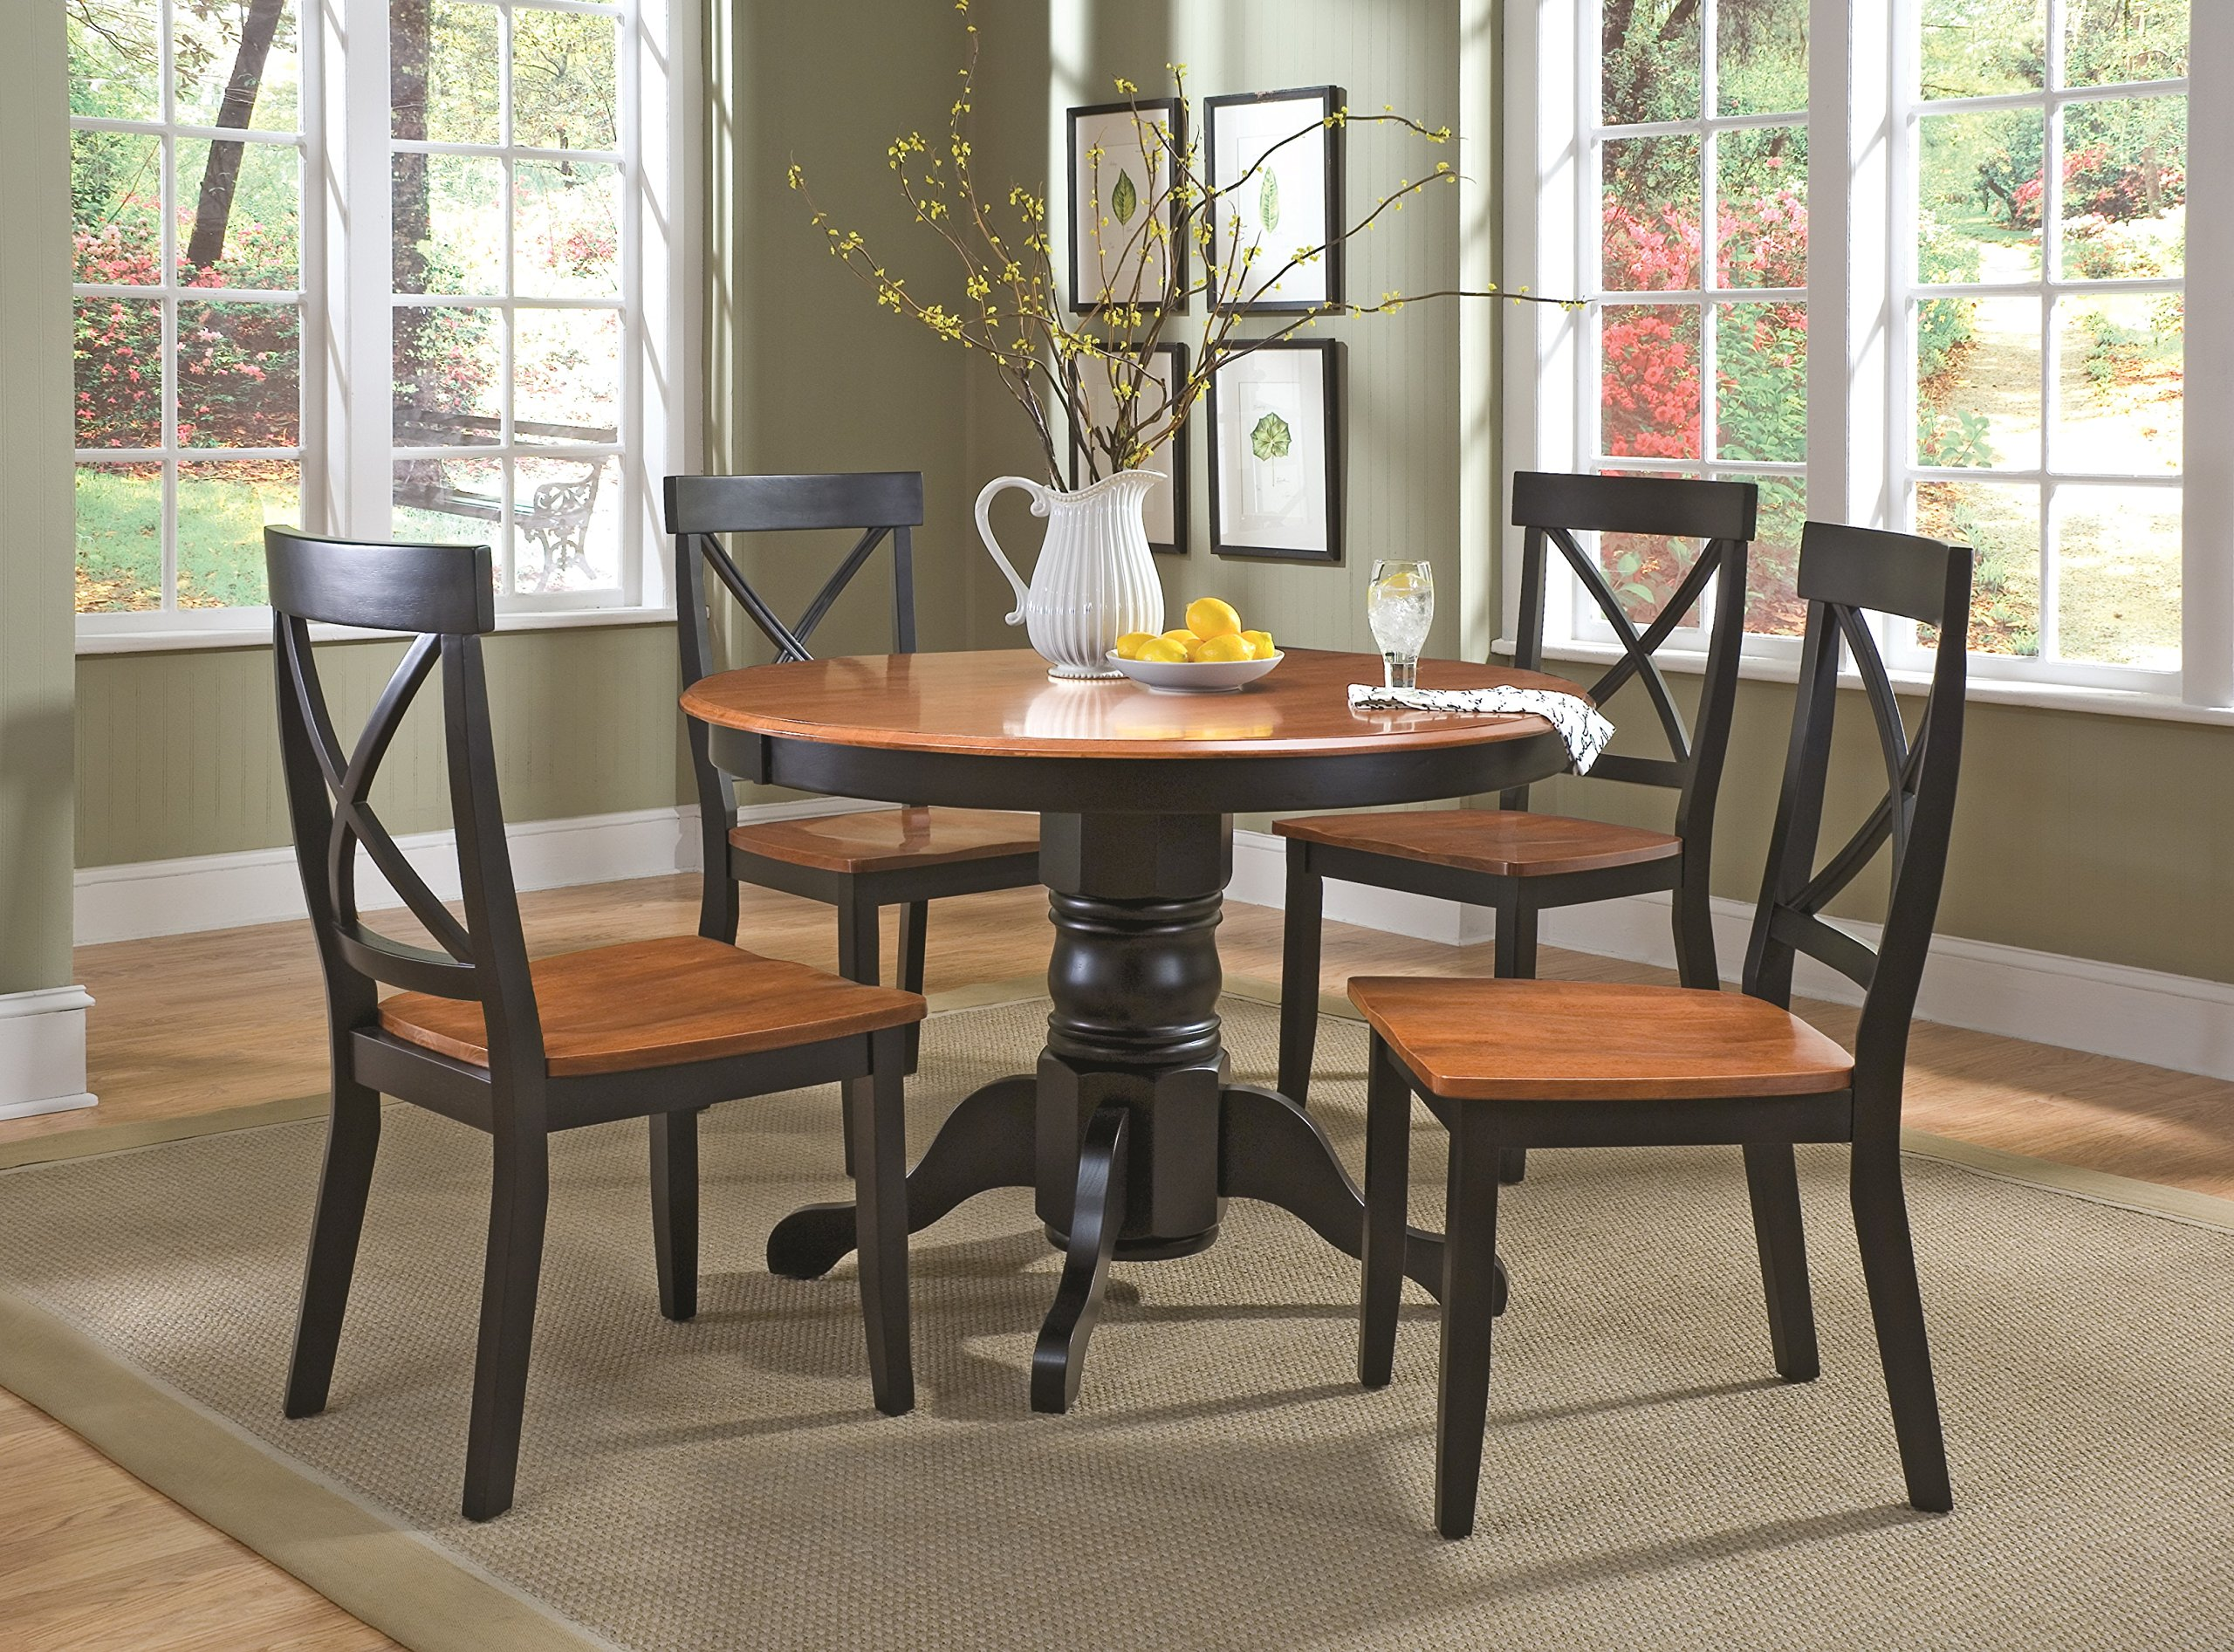 Cottage Black/Oak 5 Piece 42'' Round Dining Set with 4 Chairs by Home Styles by Home Styles